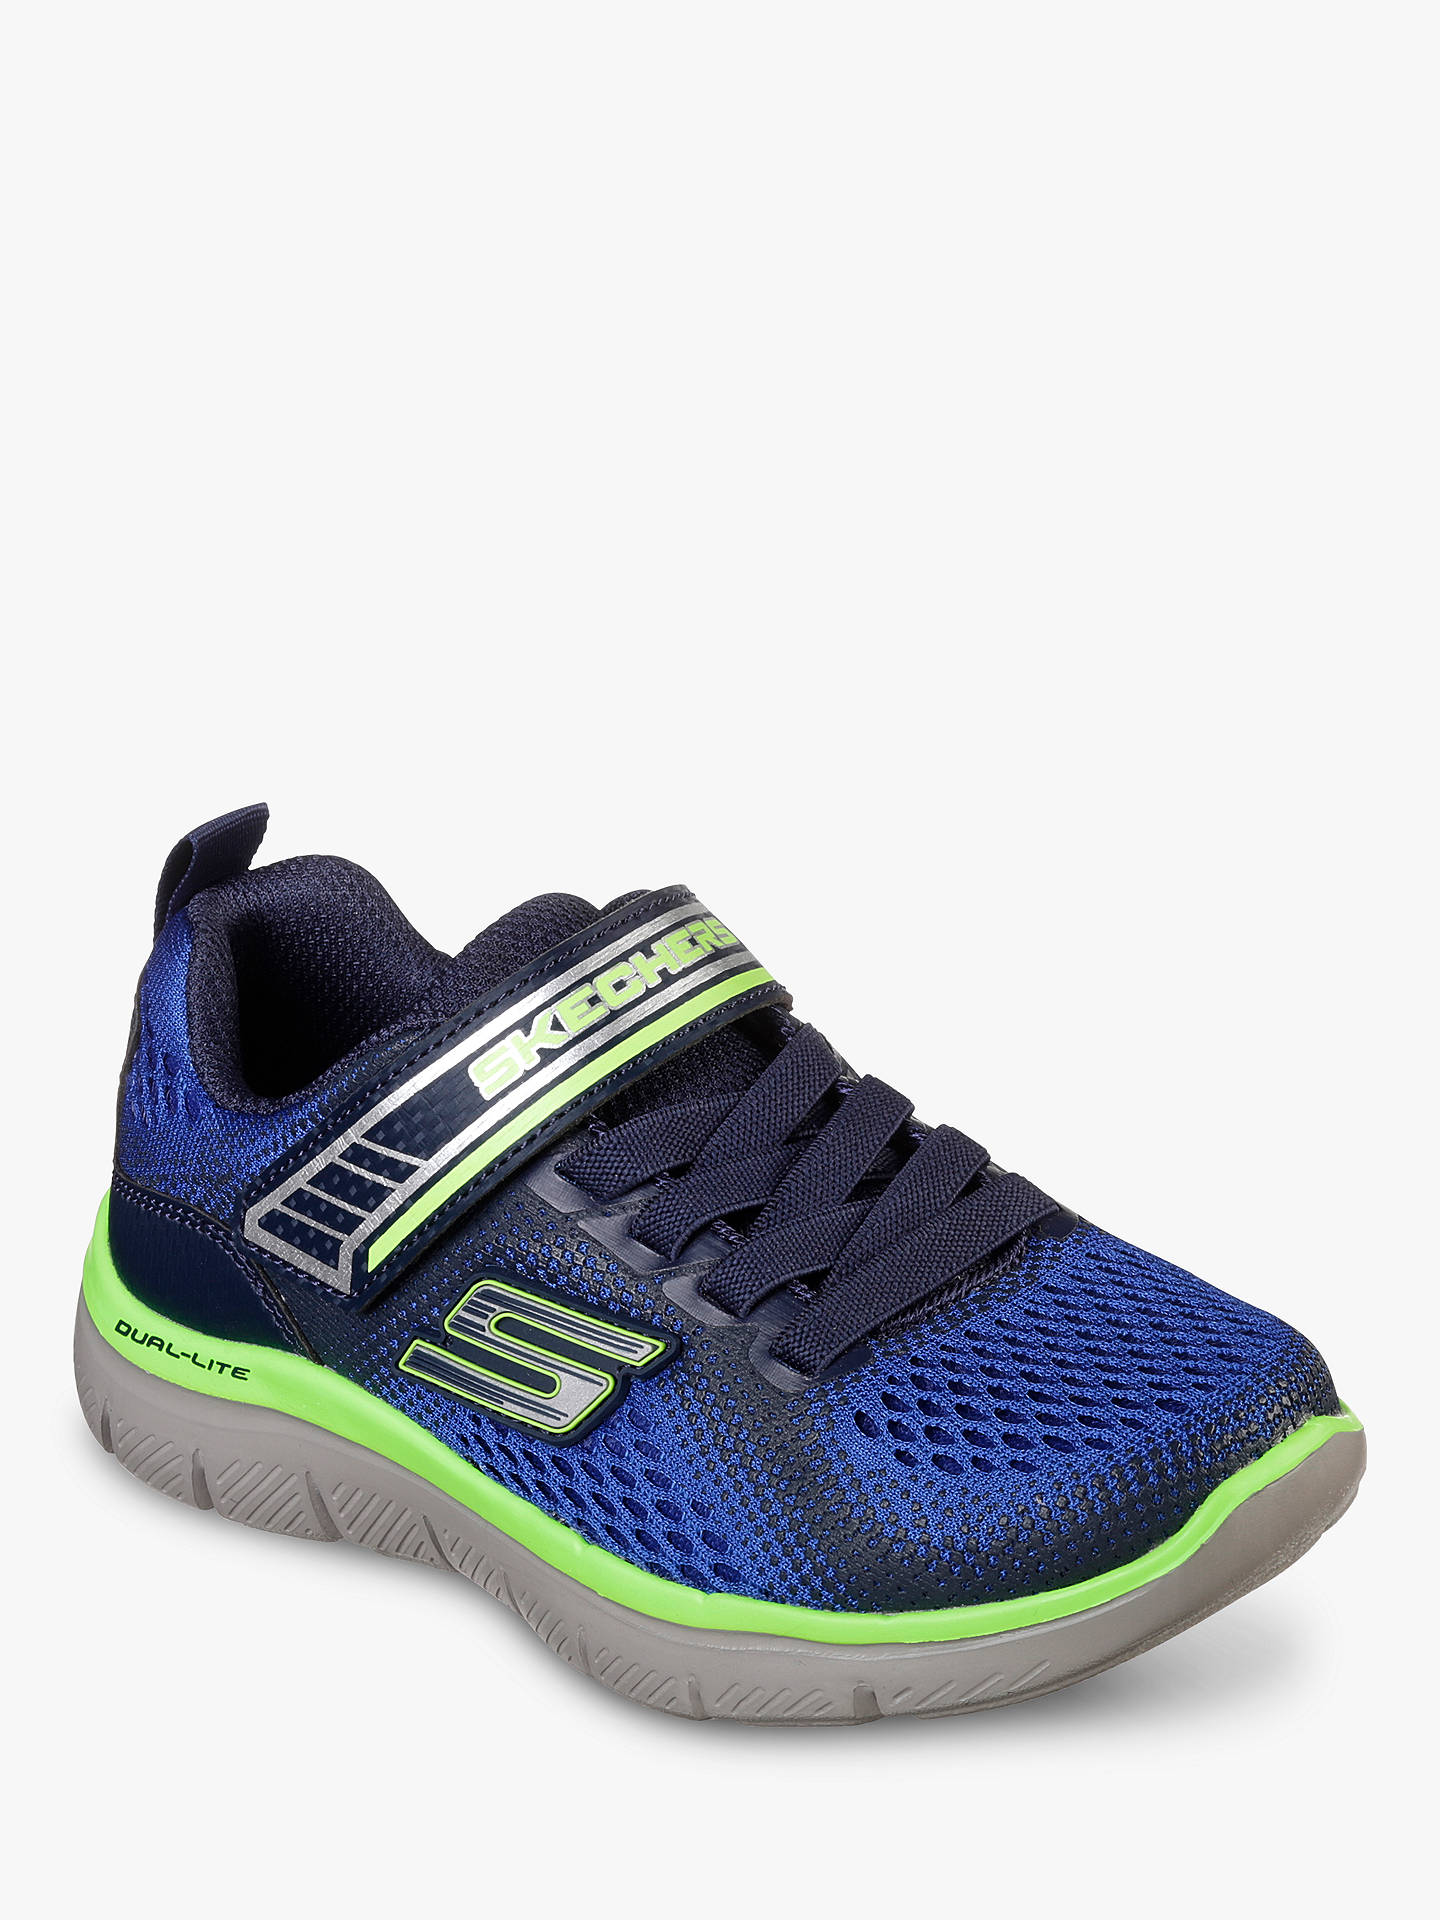 e6ad0e914b290 Buy Skechers Children's Flex Advantage 2.0 Geo Blast Trainers, Blue, 34  Online at johnlewis ...